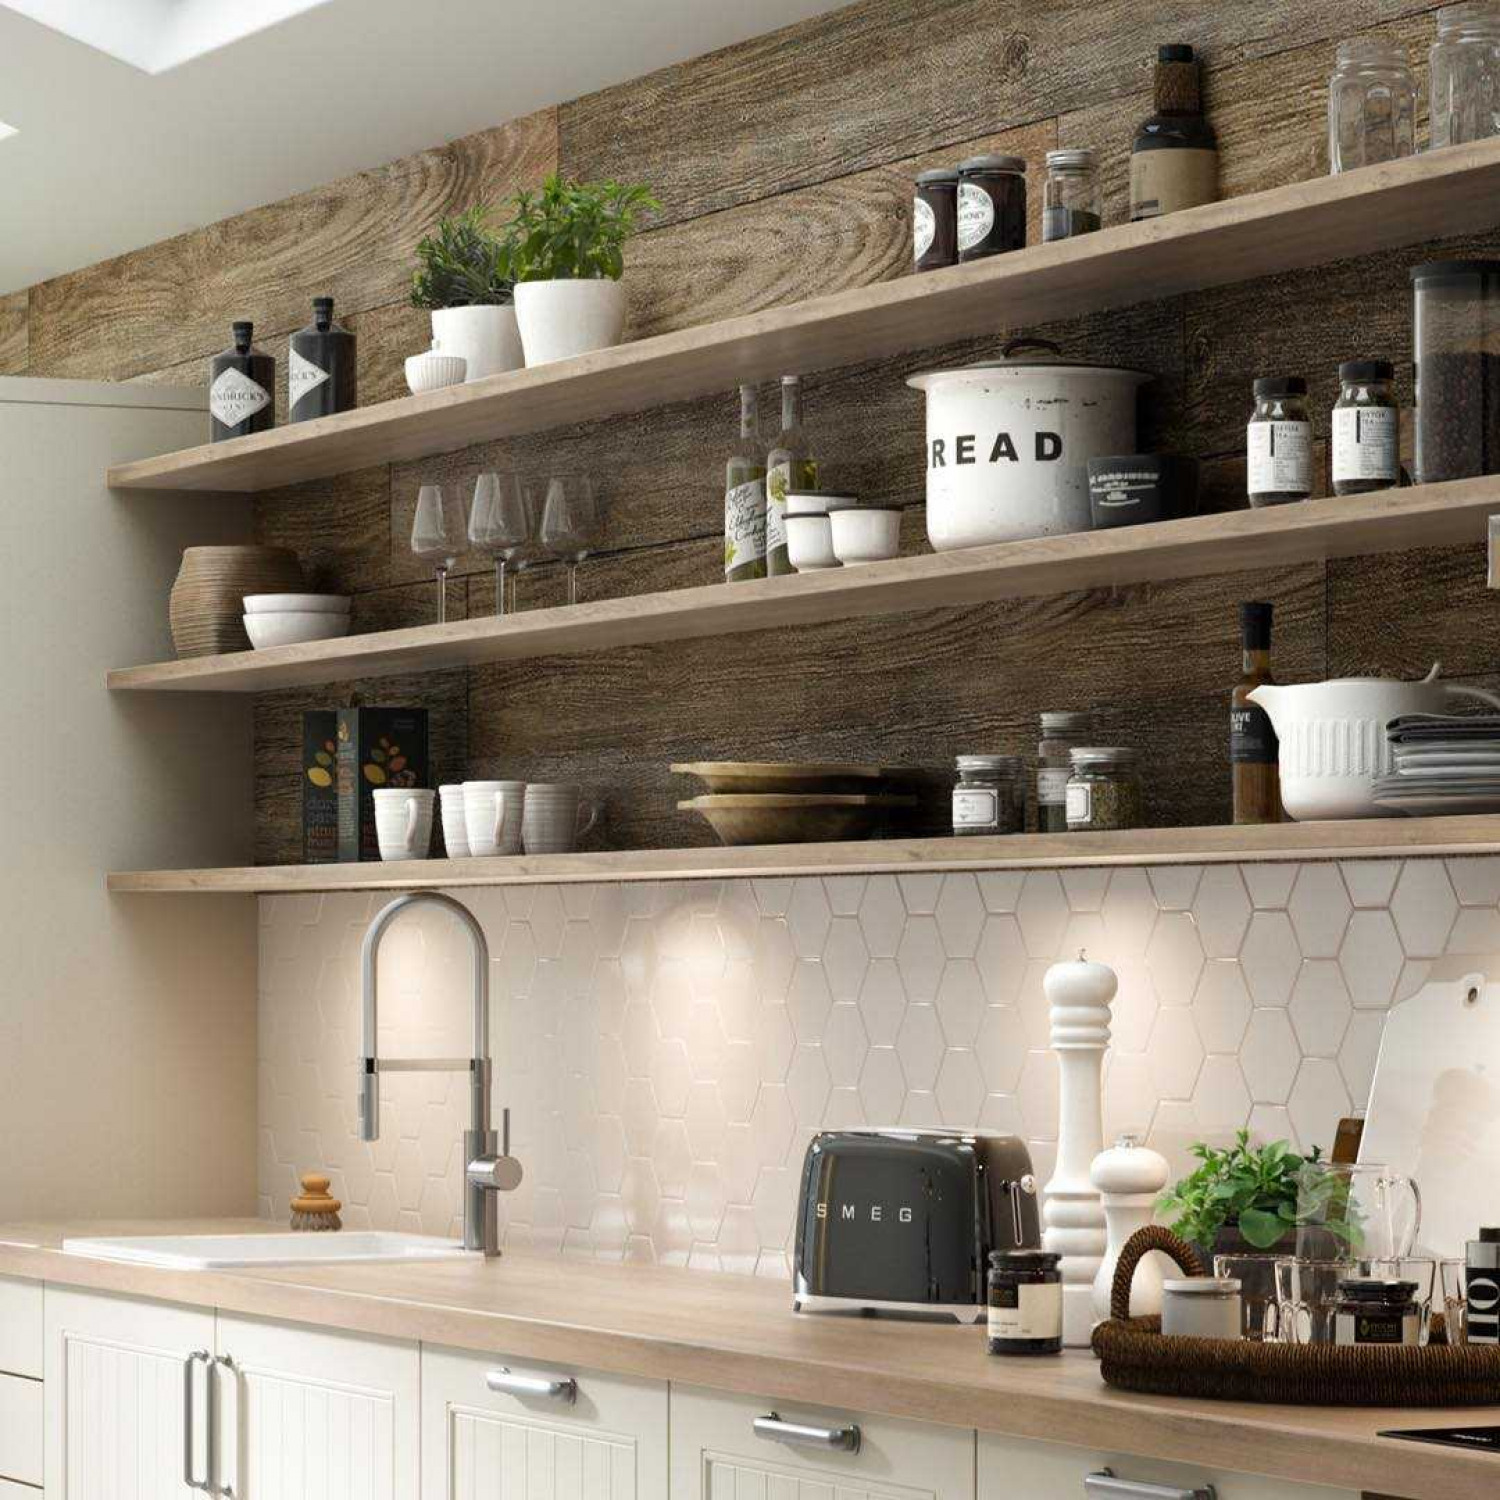 Kitchen Shelf Designs: Kitchen Shelving: Discover Storage Ideas For Your Home